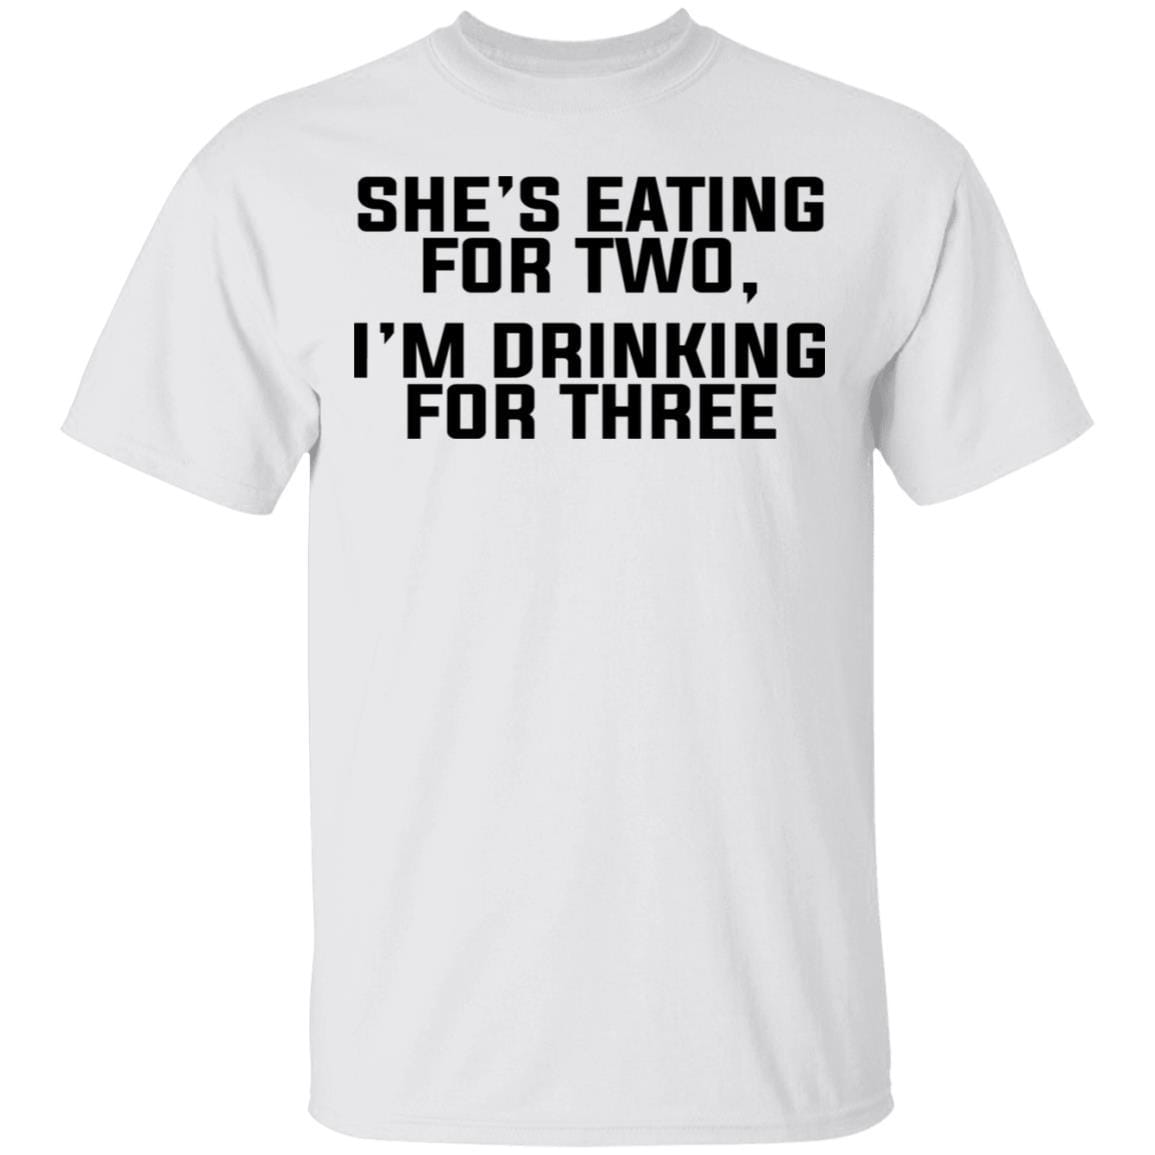 She's Eating For Two I'm Drinking For Three T-Shirts, Hoodies 1049-9974-86894819-48300 - Tee Ript